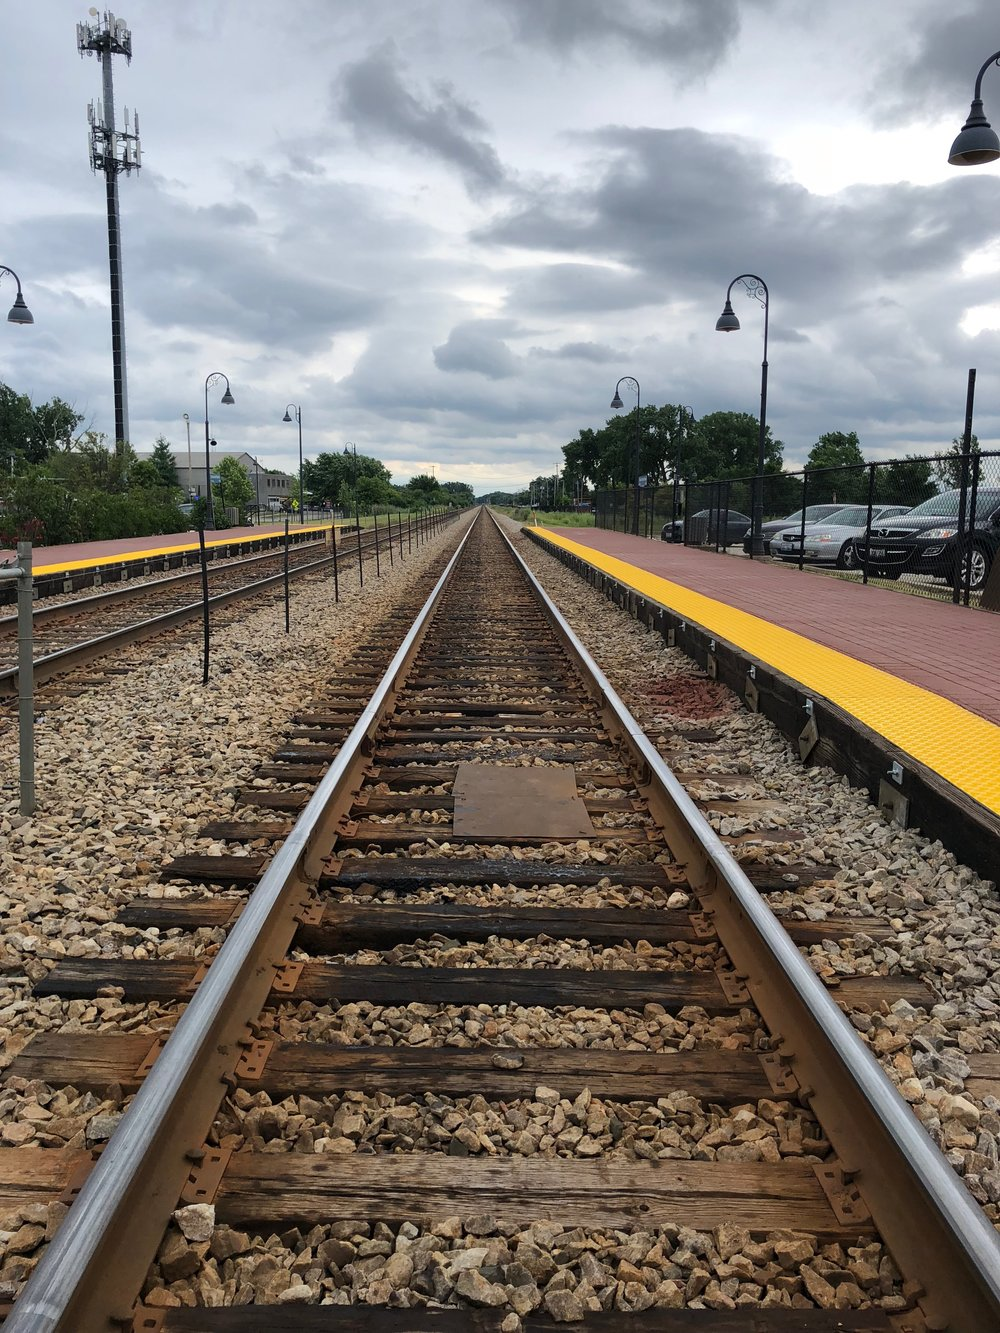 The Metra is another common way to commute - typically from the suburbs.